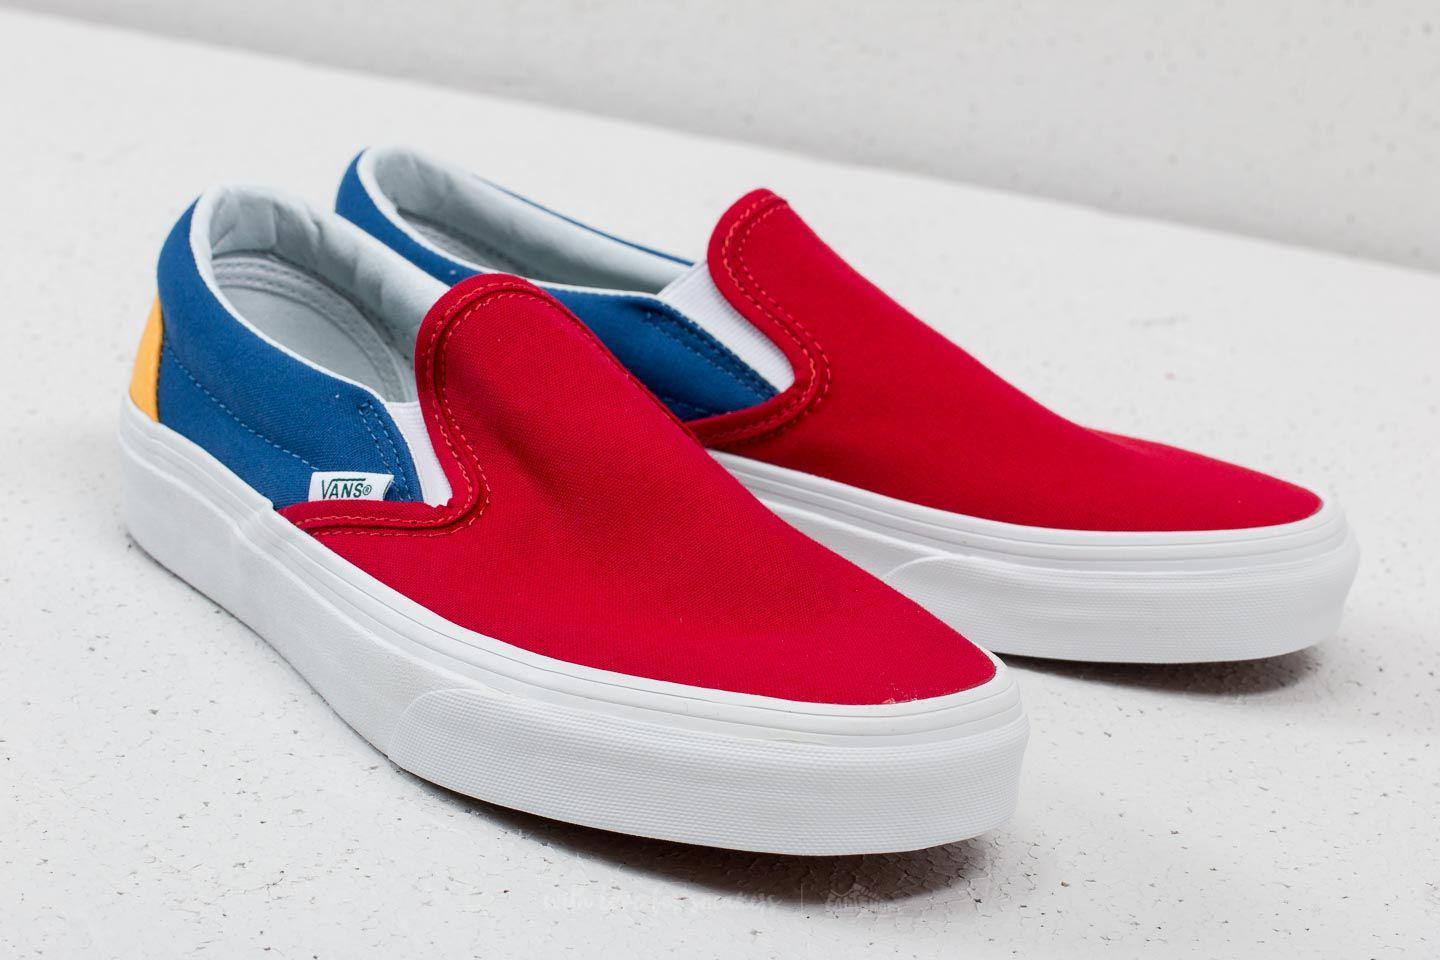 Lyst - Vans Classic Slip-on ( Yacht Club) Red  Blue  Yellow for Men 02328b630